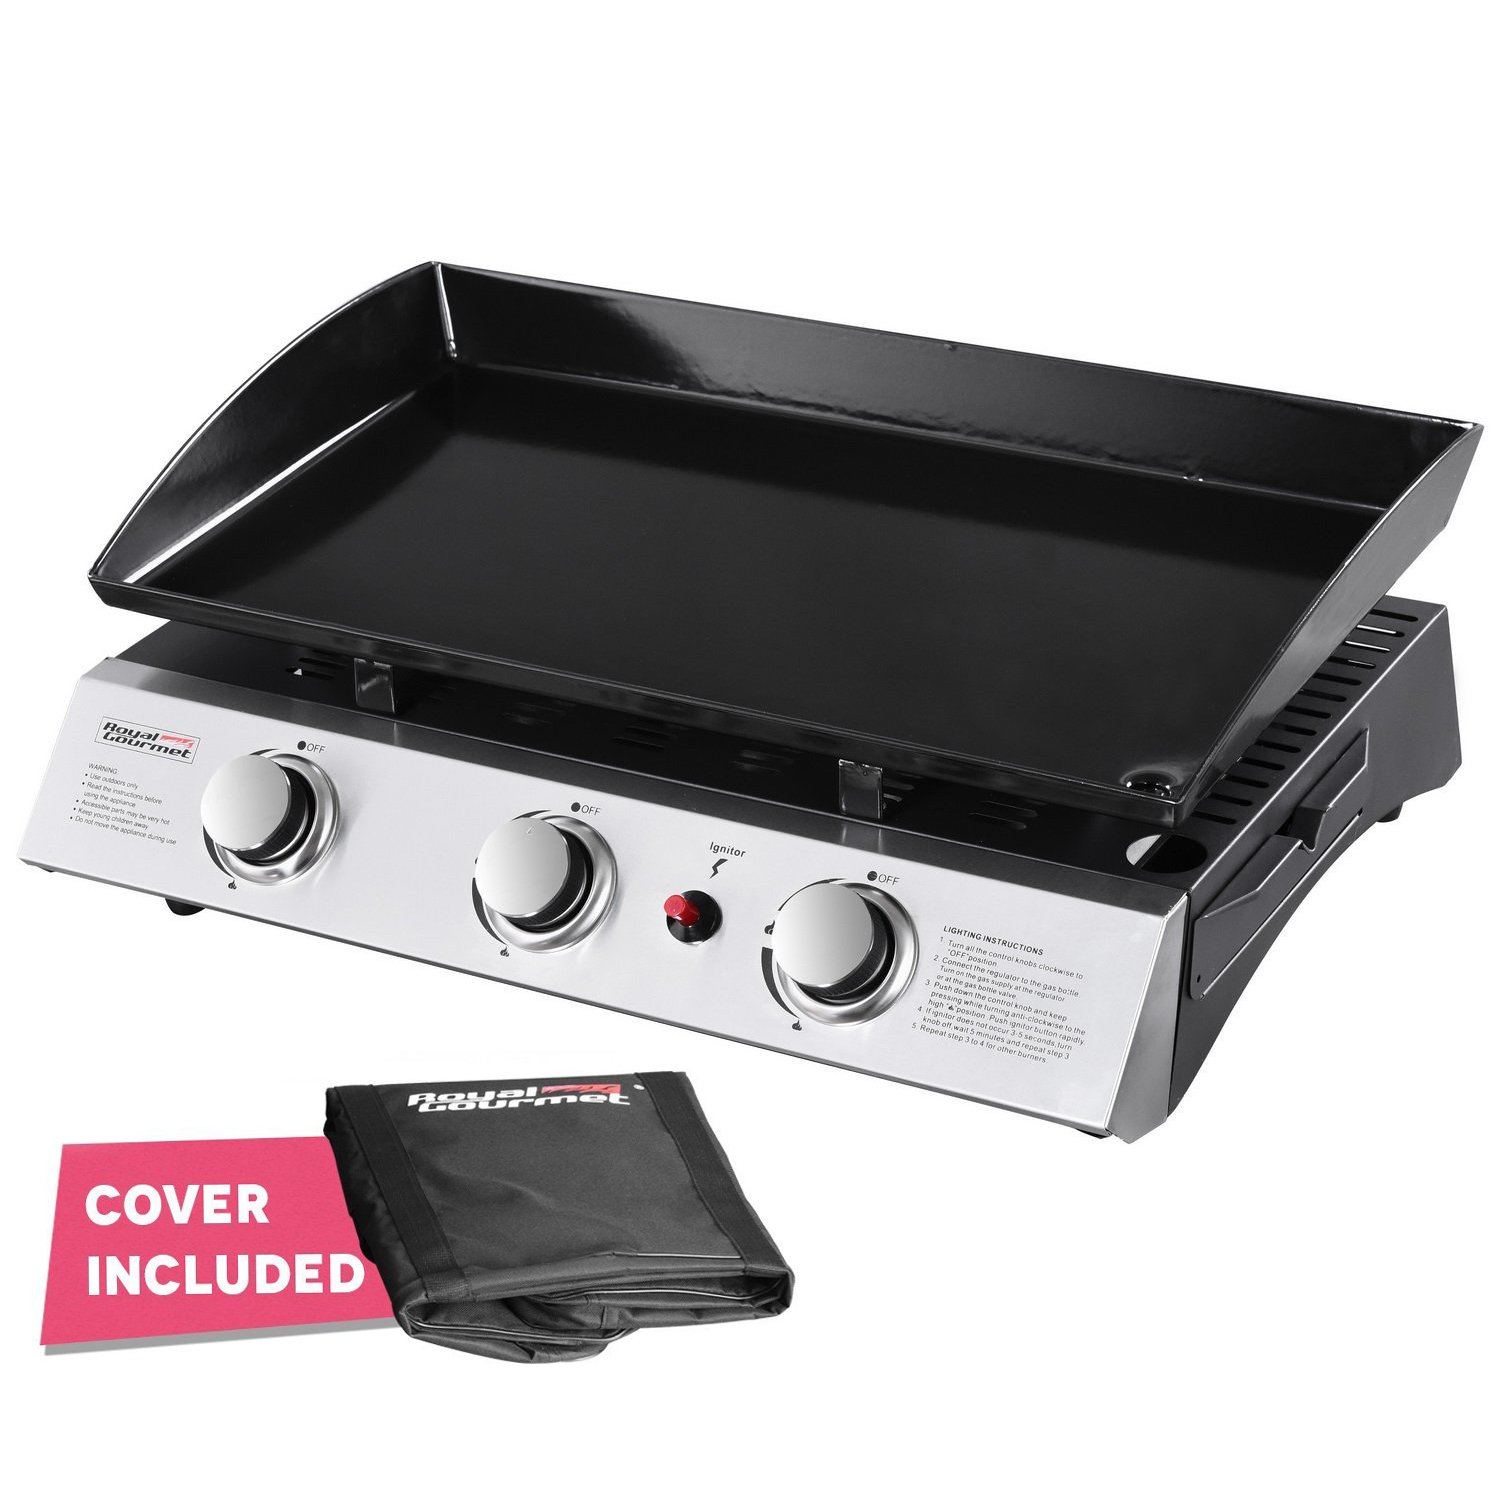 5. Royal Gourmet PD1300 Portable 3-Burner Propane Gas Grill Griddle